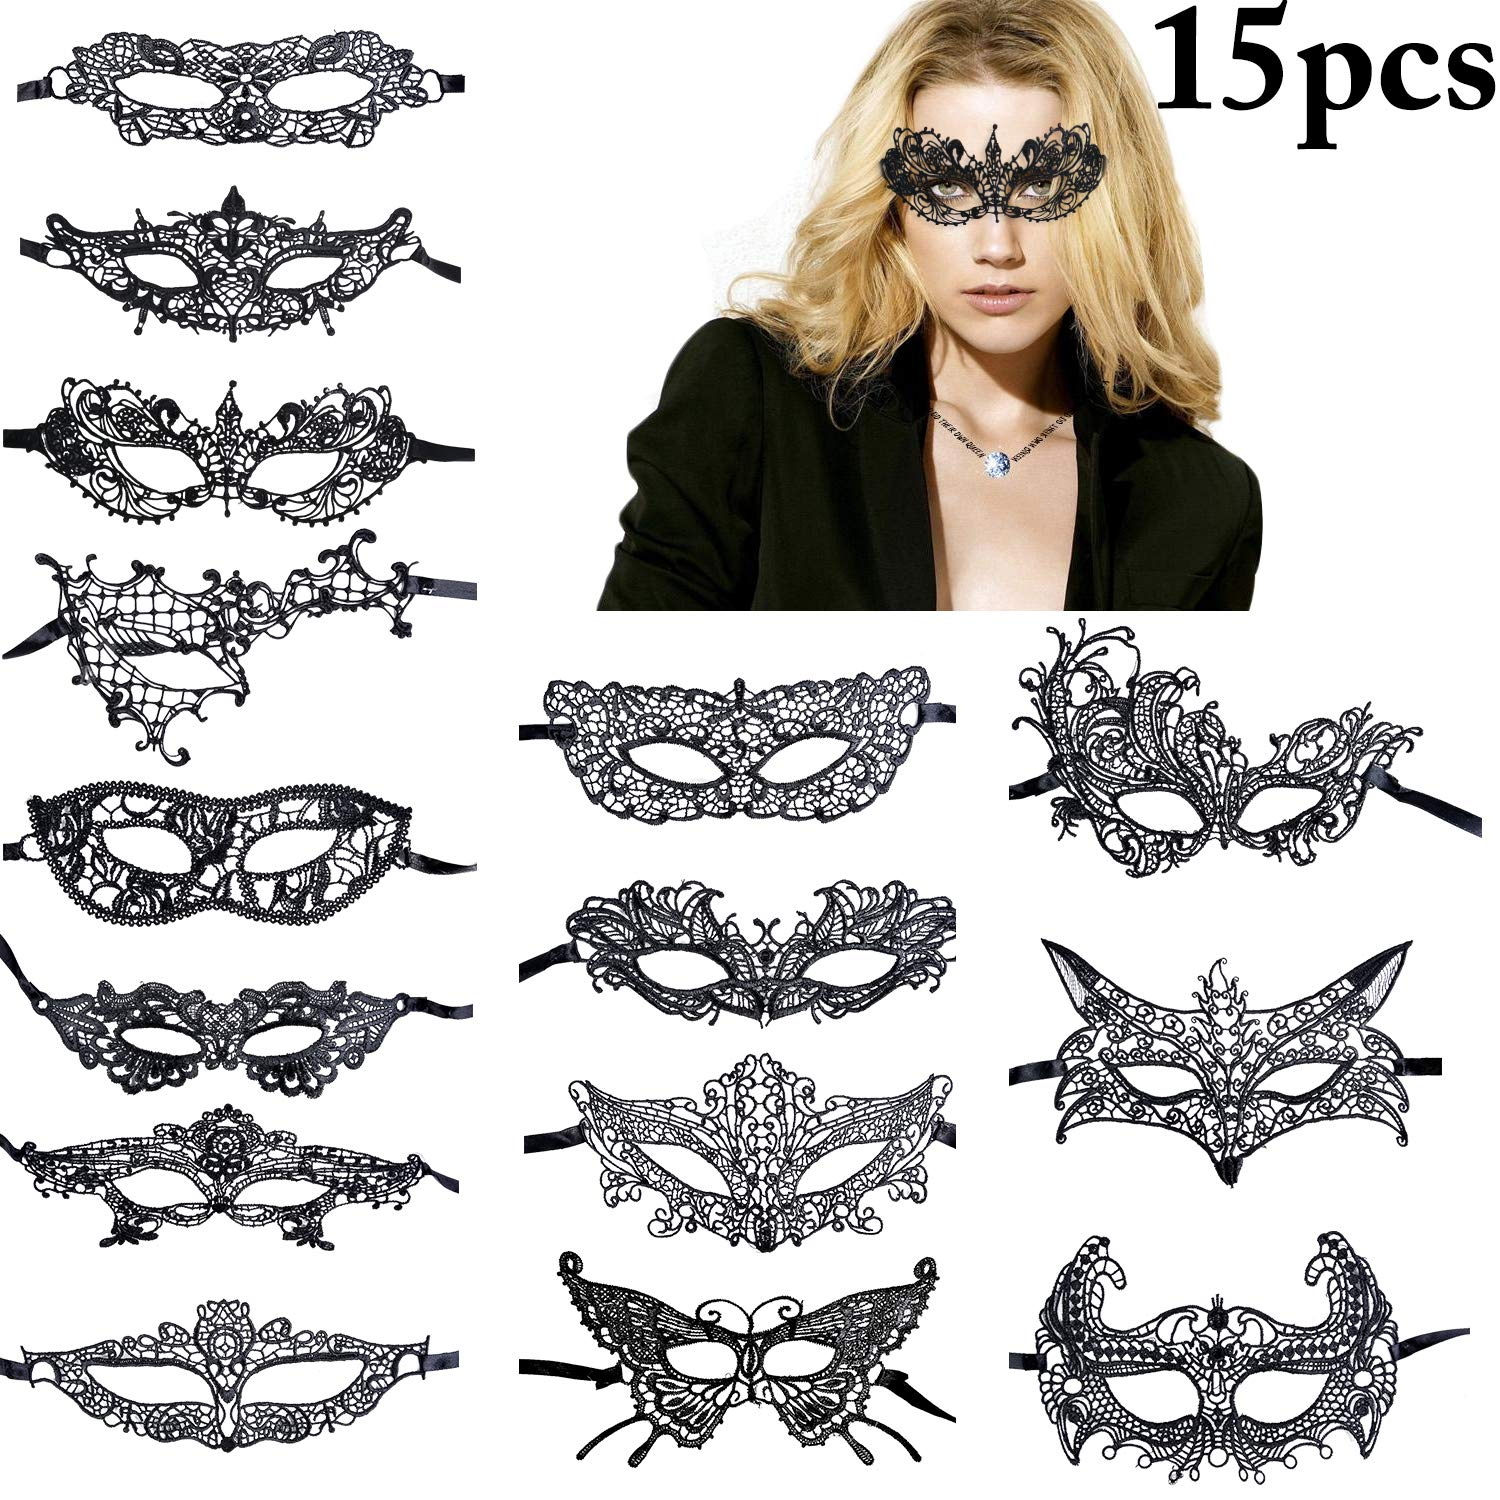 Coxeer 15 PCS Black Lace Mask Masquerade Mask Party Ball Dress Masks Costume Halloween Mask